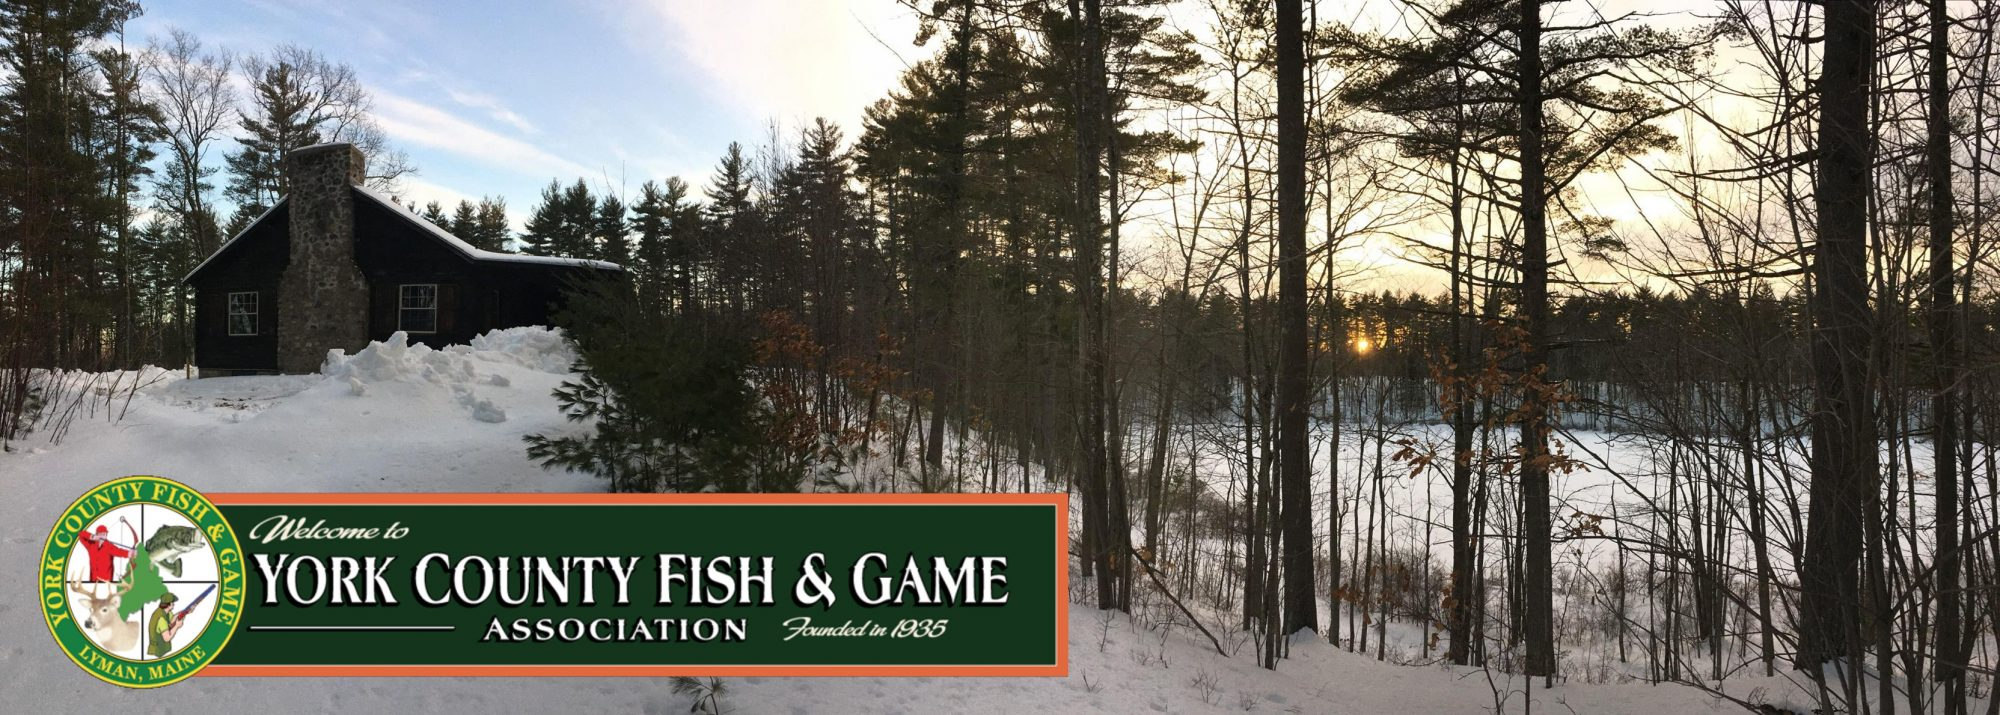 York County Fish & Game Association